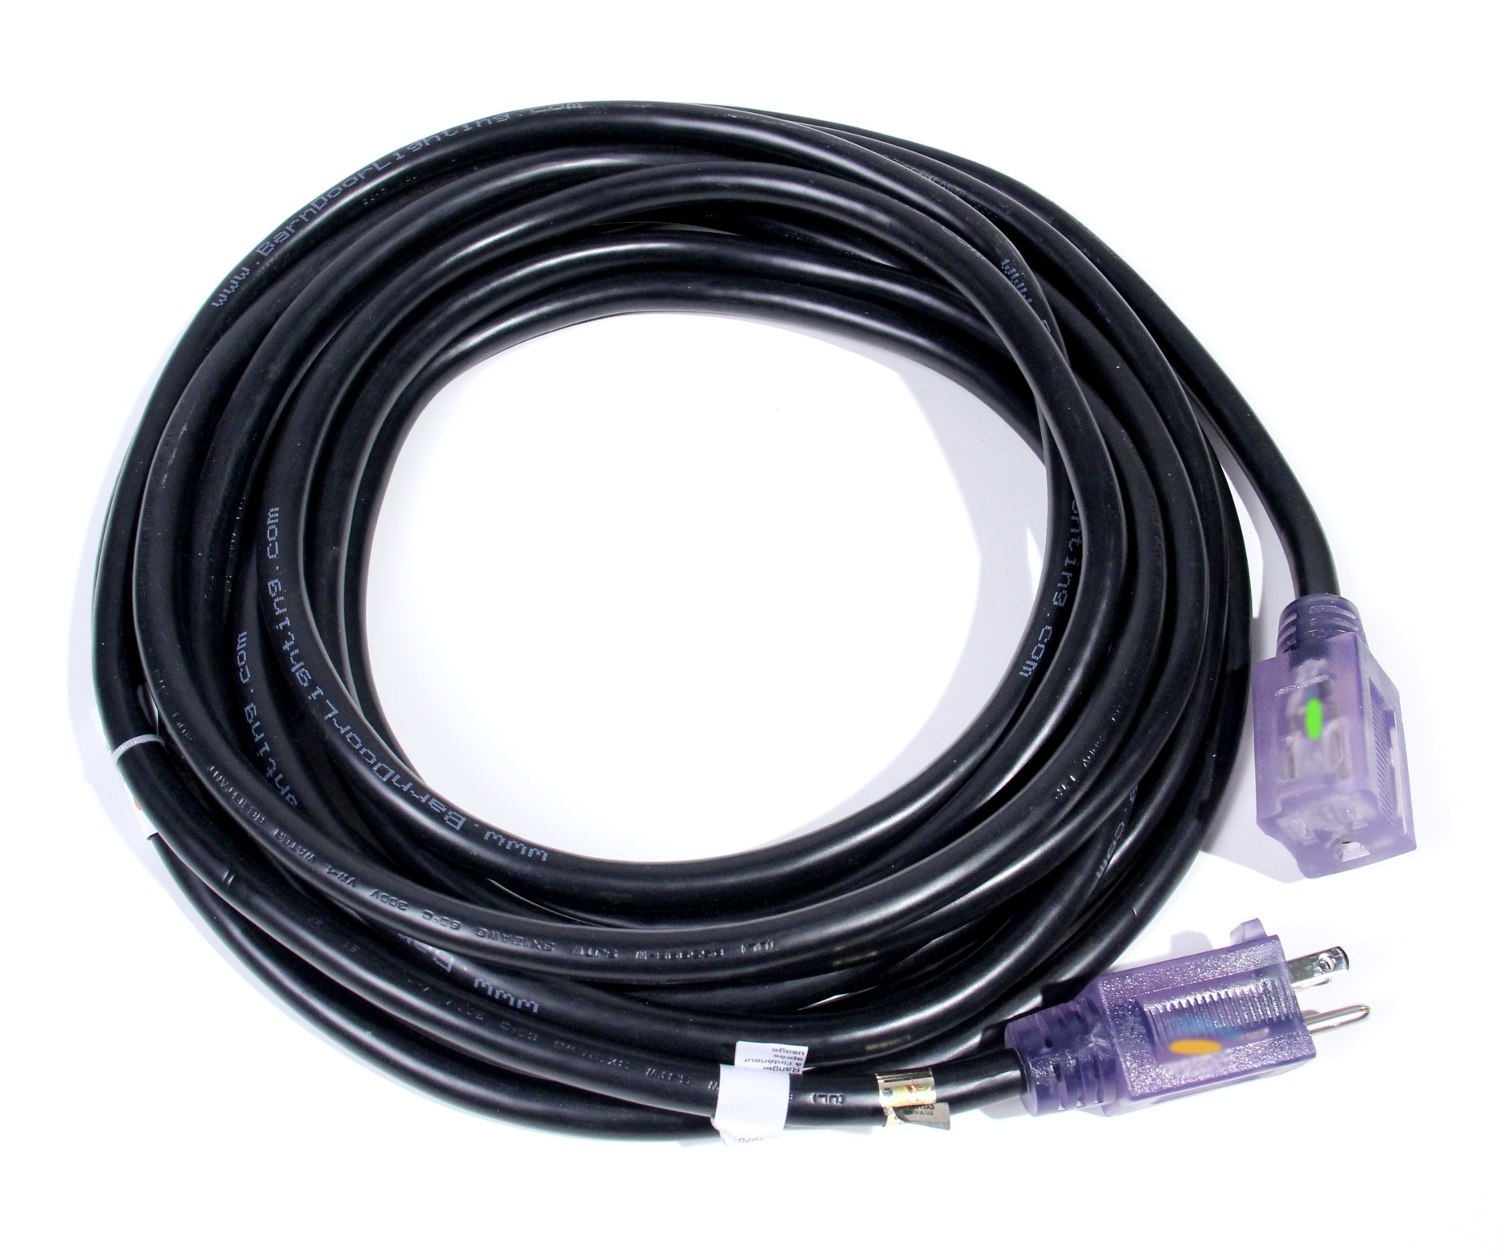 Pro Glo Stinger BLACK Extension Cable 12/3 50ft - BarnDoor Lighting